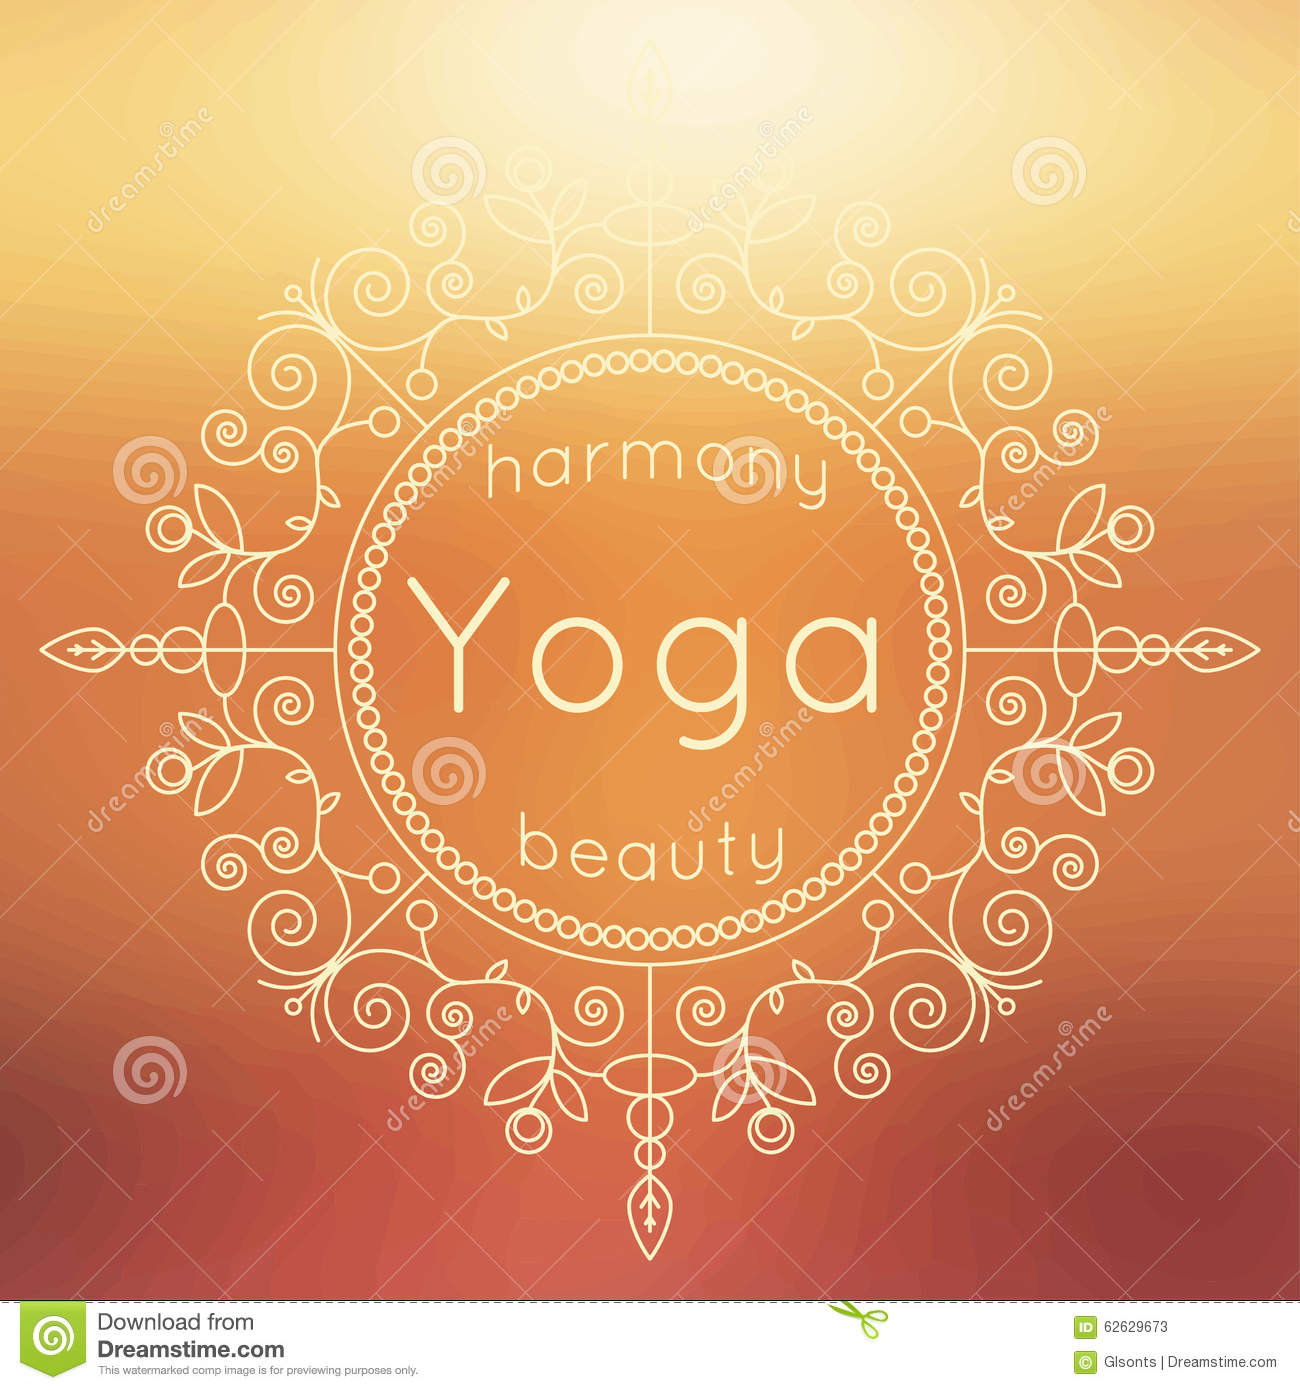 Vector Yoga Illustration Poster With Floral Ornament And